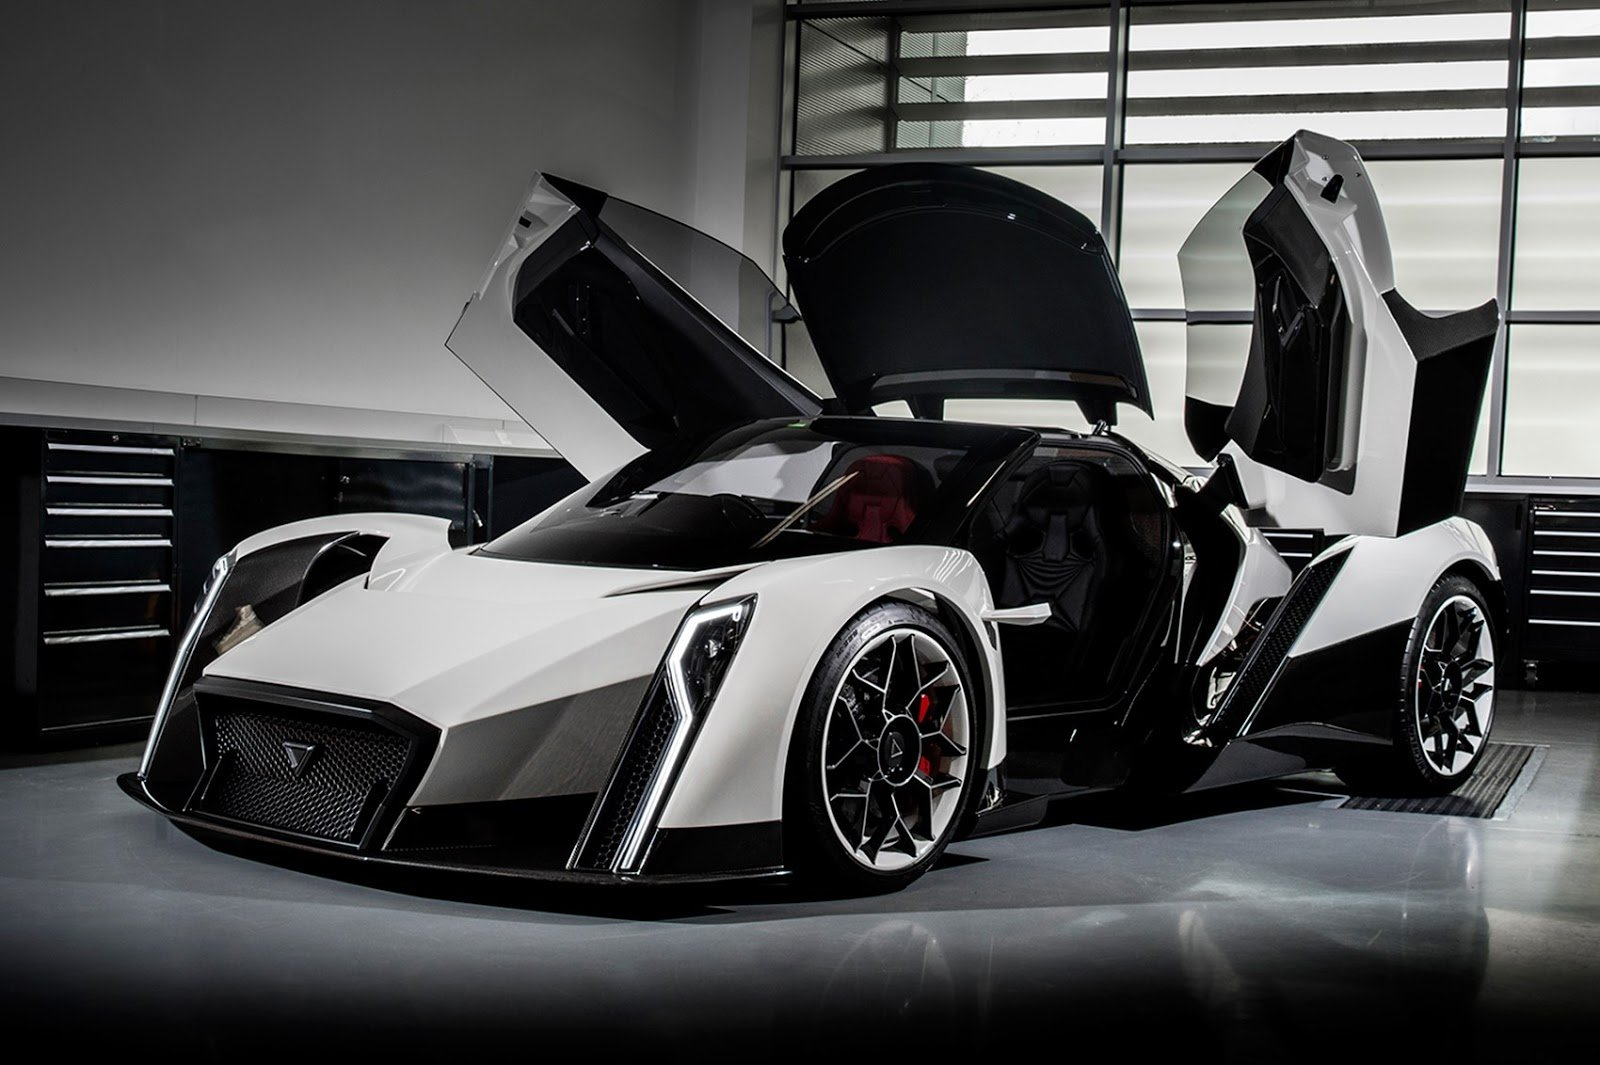 The World S Newest Electric Hypercar Has Some Seriously Crazy